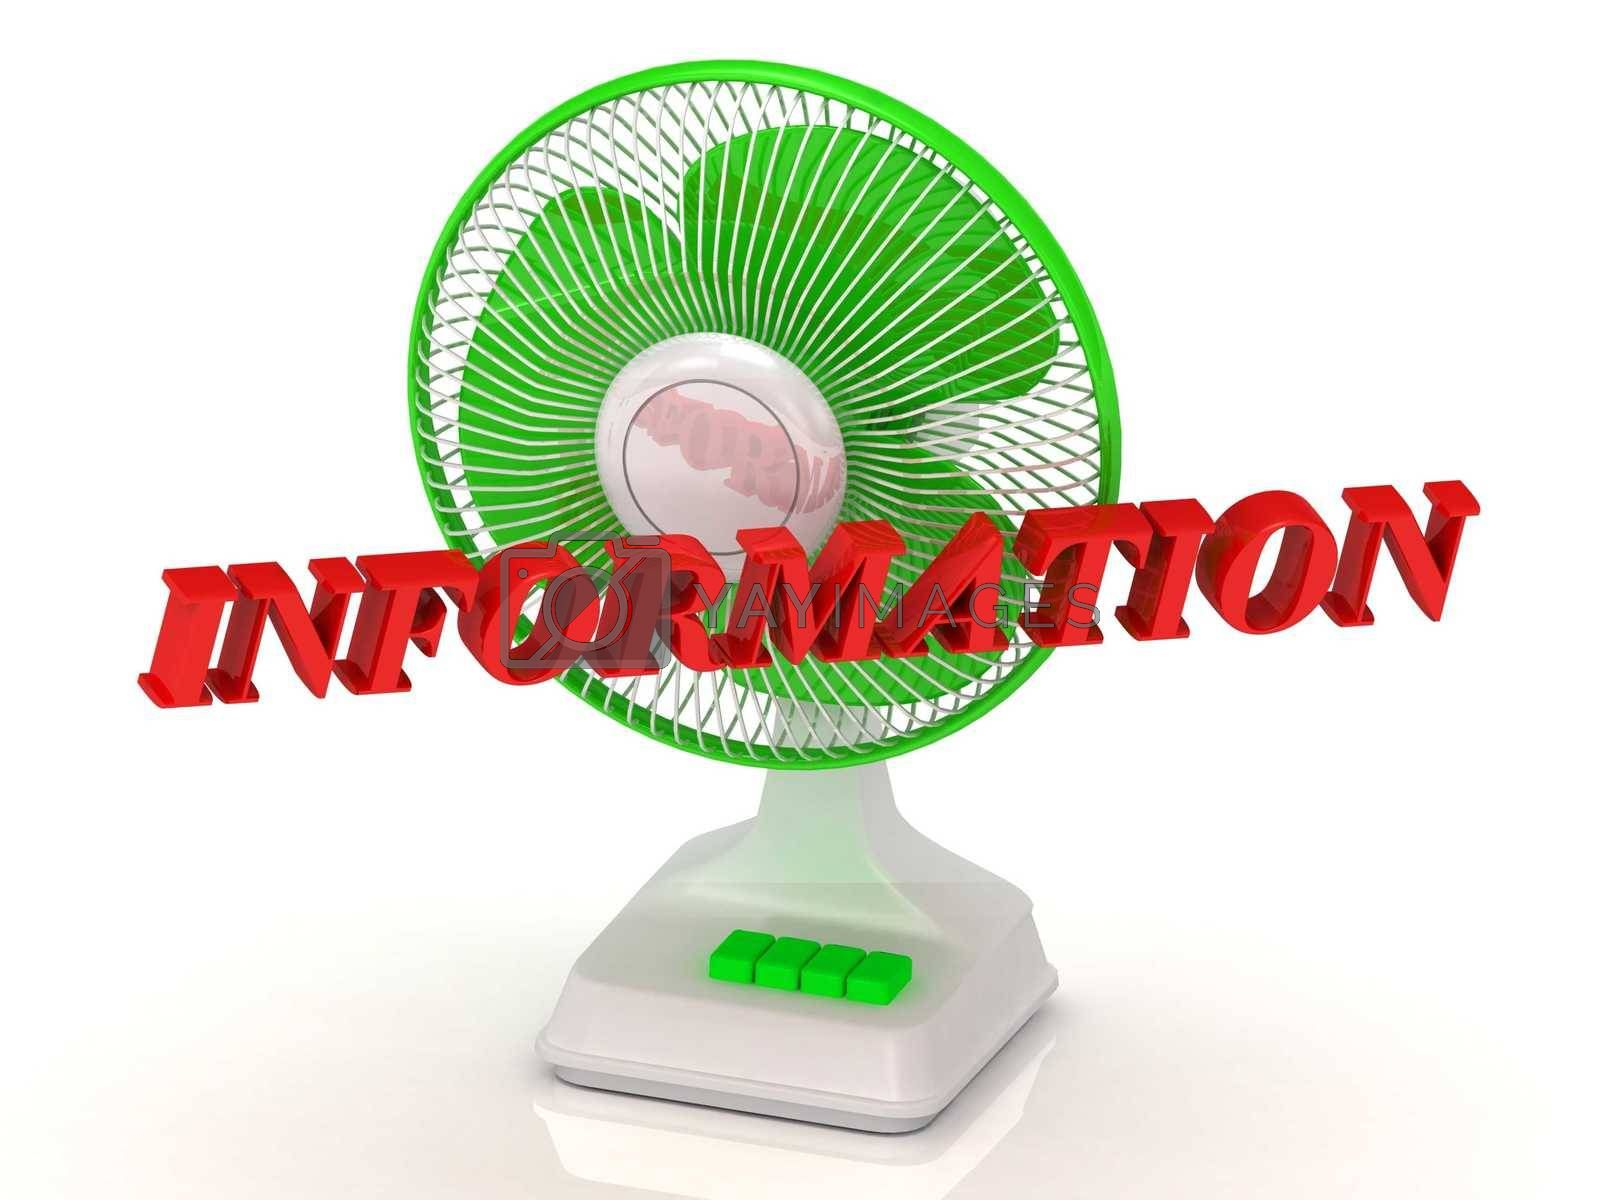 INFORMATION- Green Fan propeller and bright color letters on a white background